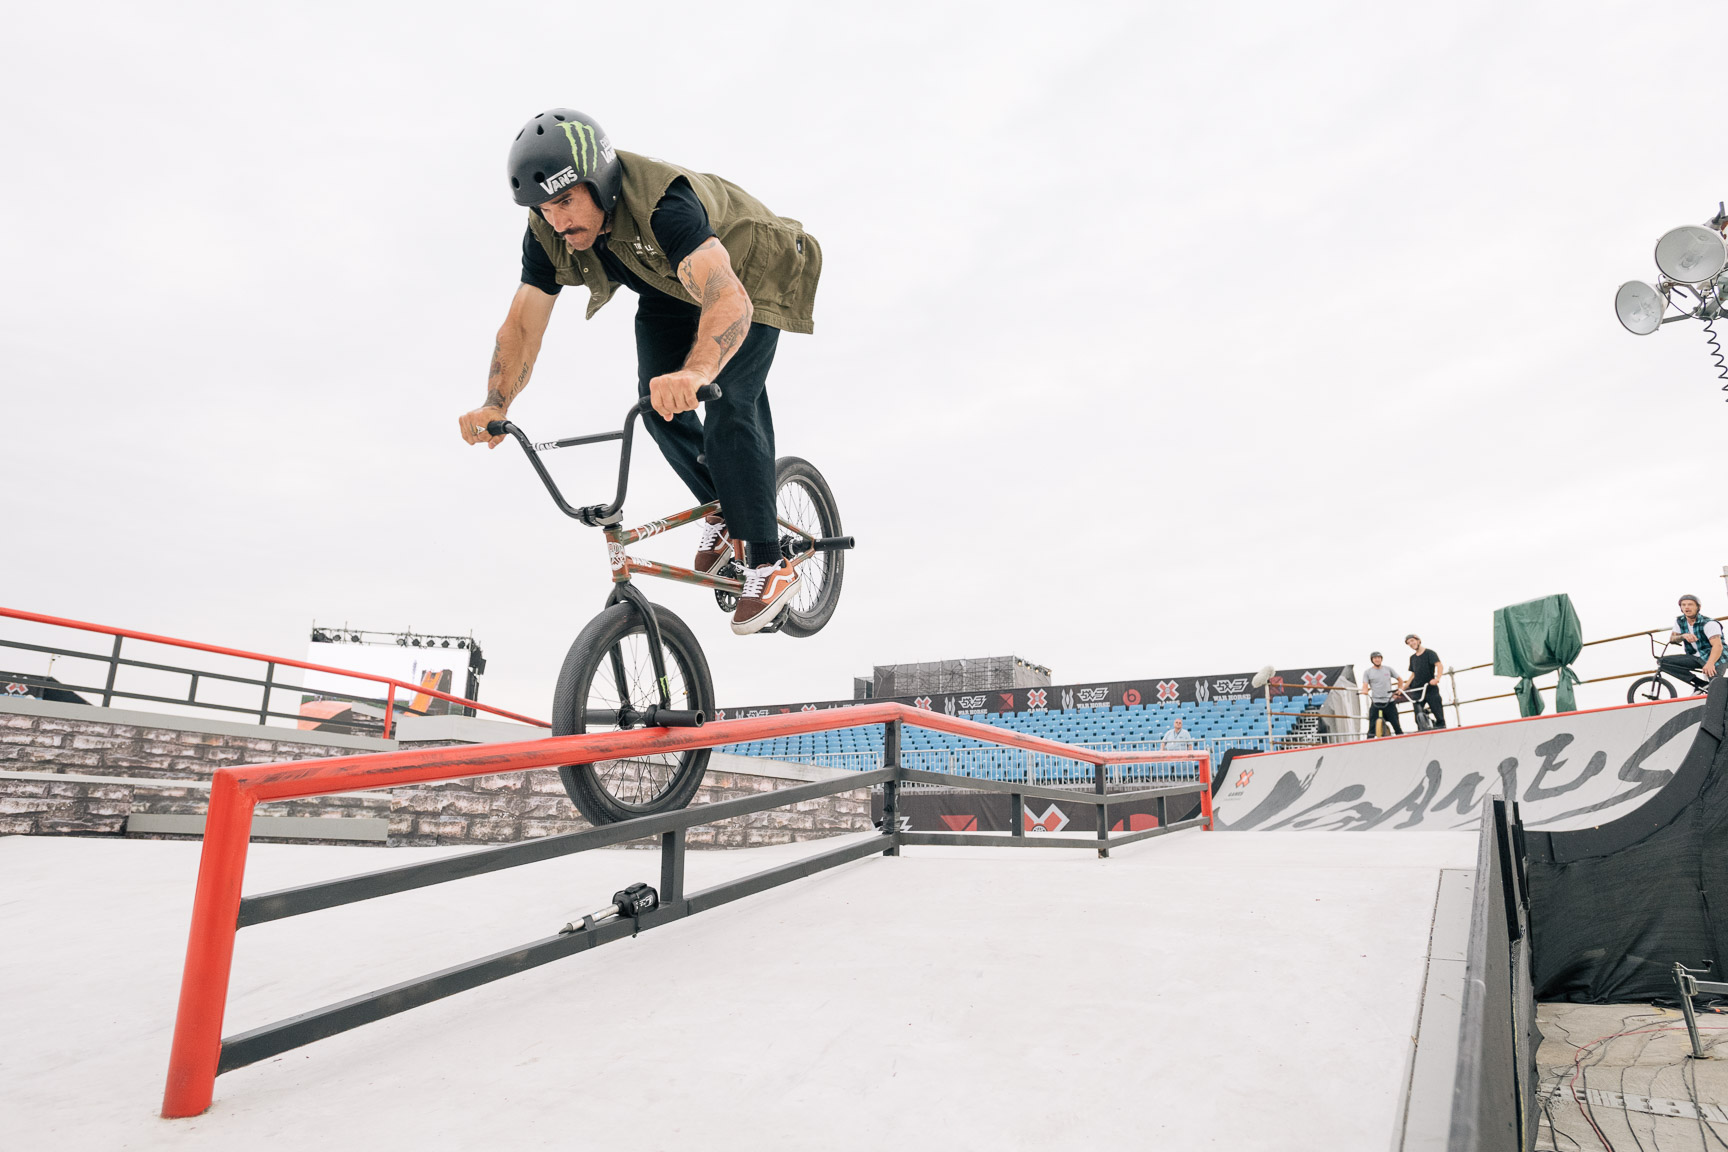 X Games Shanghai 2019: Dakota Roche